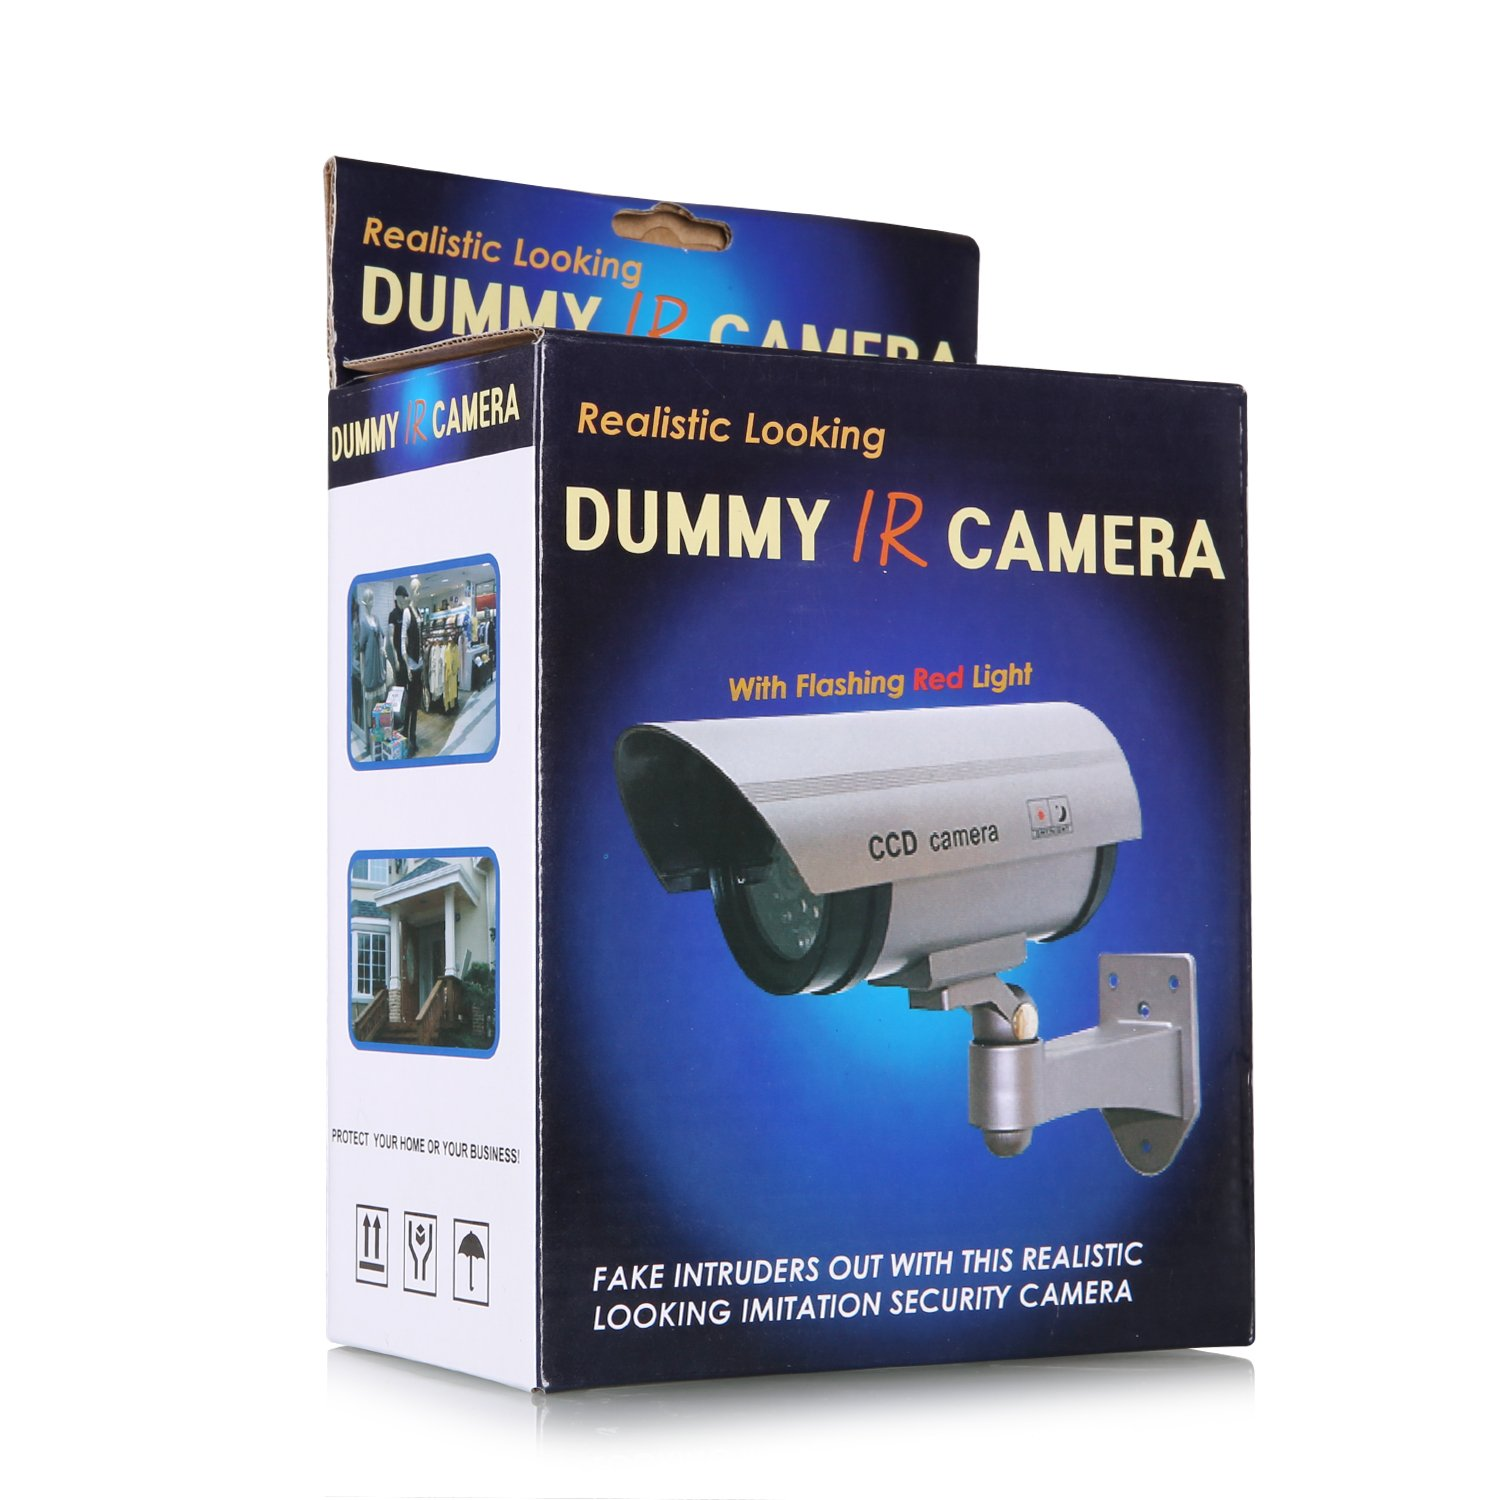 ANNKE 2 Pack Home Security Simulated Cameras with Flashing Red LED for Indoor and Outdoor use by ANNKE (Image #7)